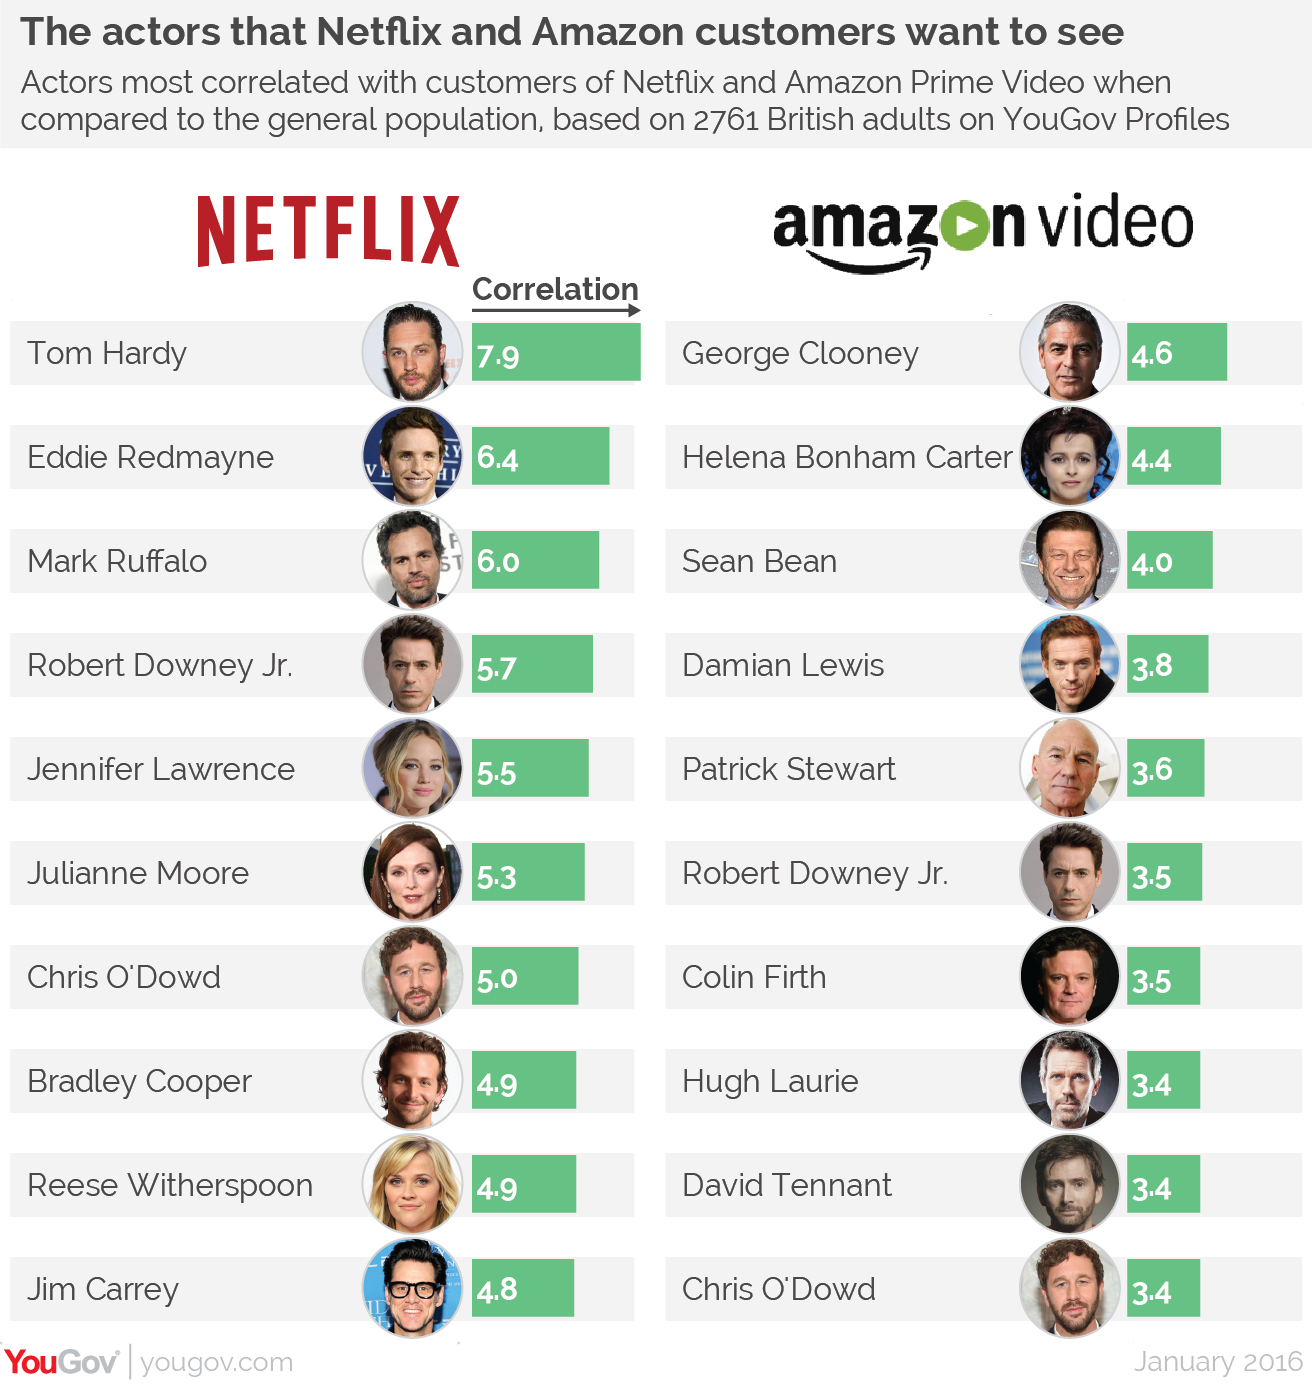 Streaming wars: the actors Netflix and Amazon customers want